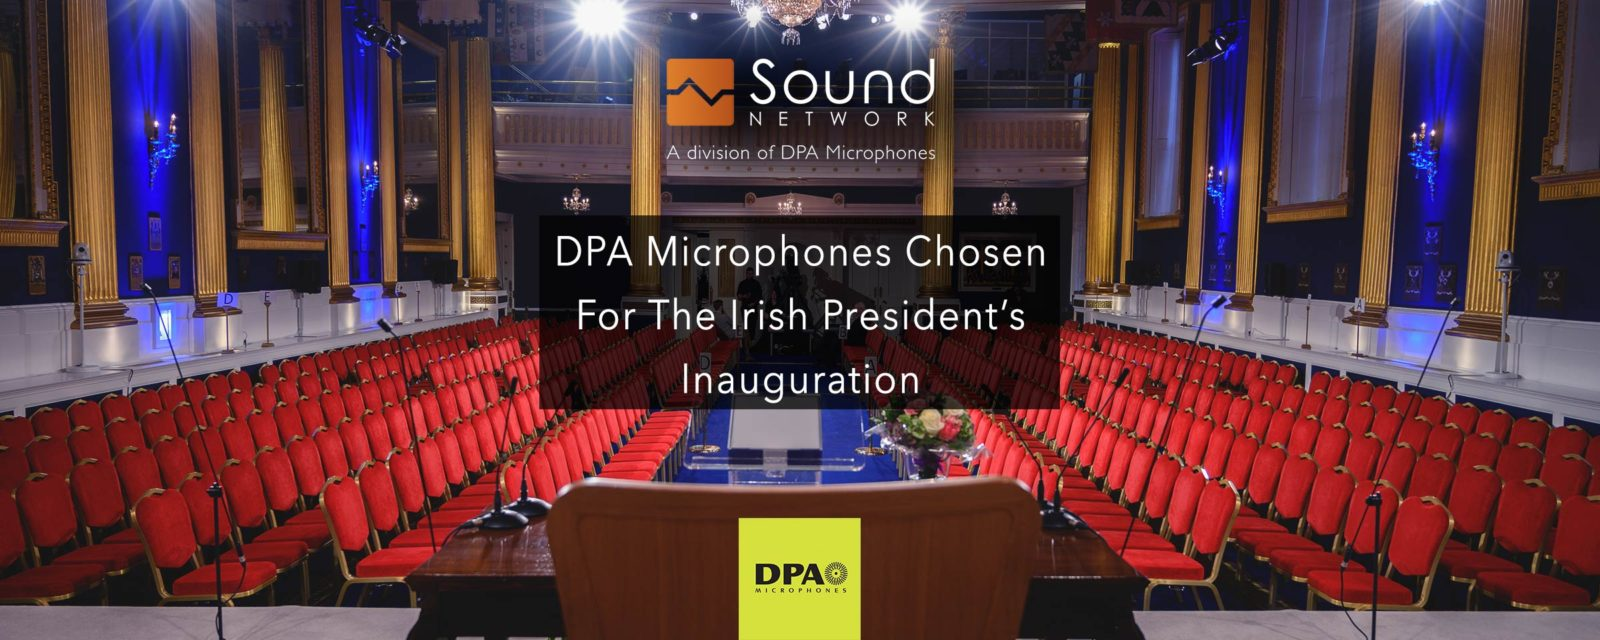 DPA-Microphones-Chosen-For-The-Irish-President's-Inauguration